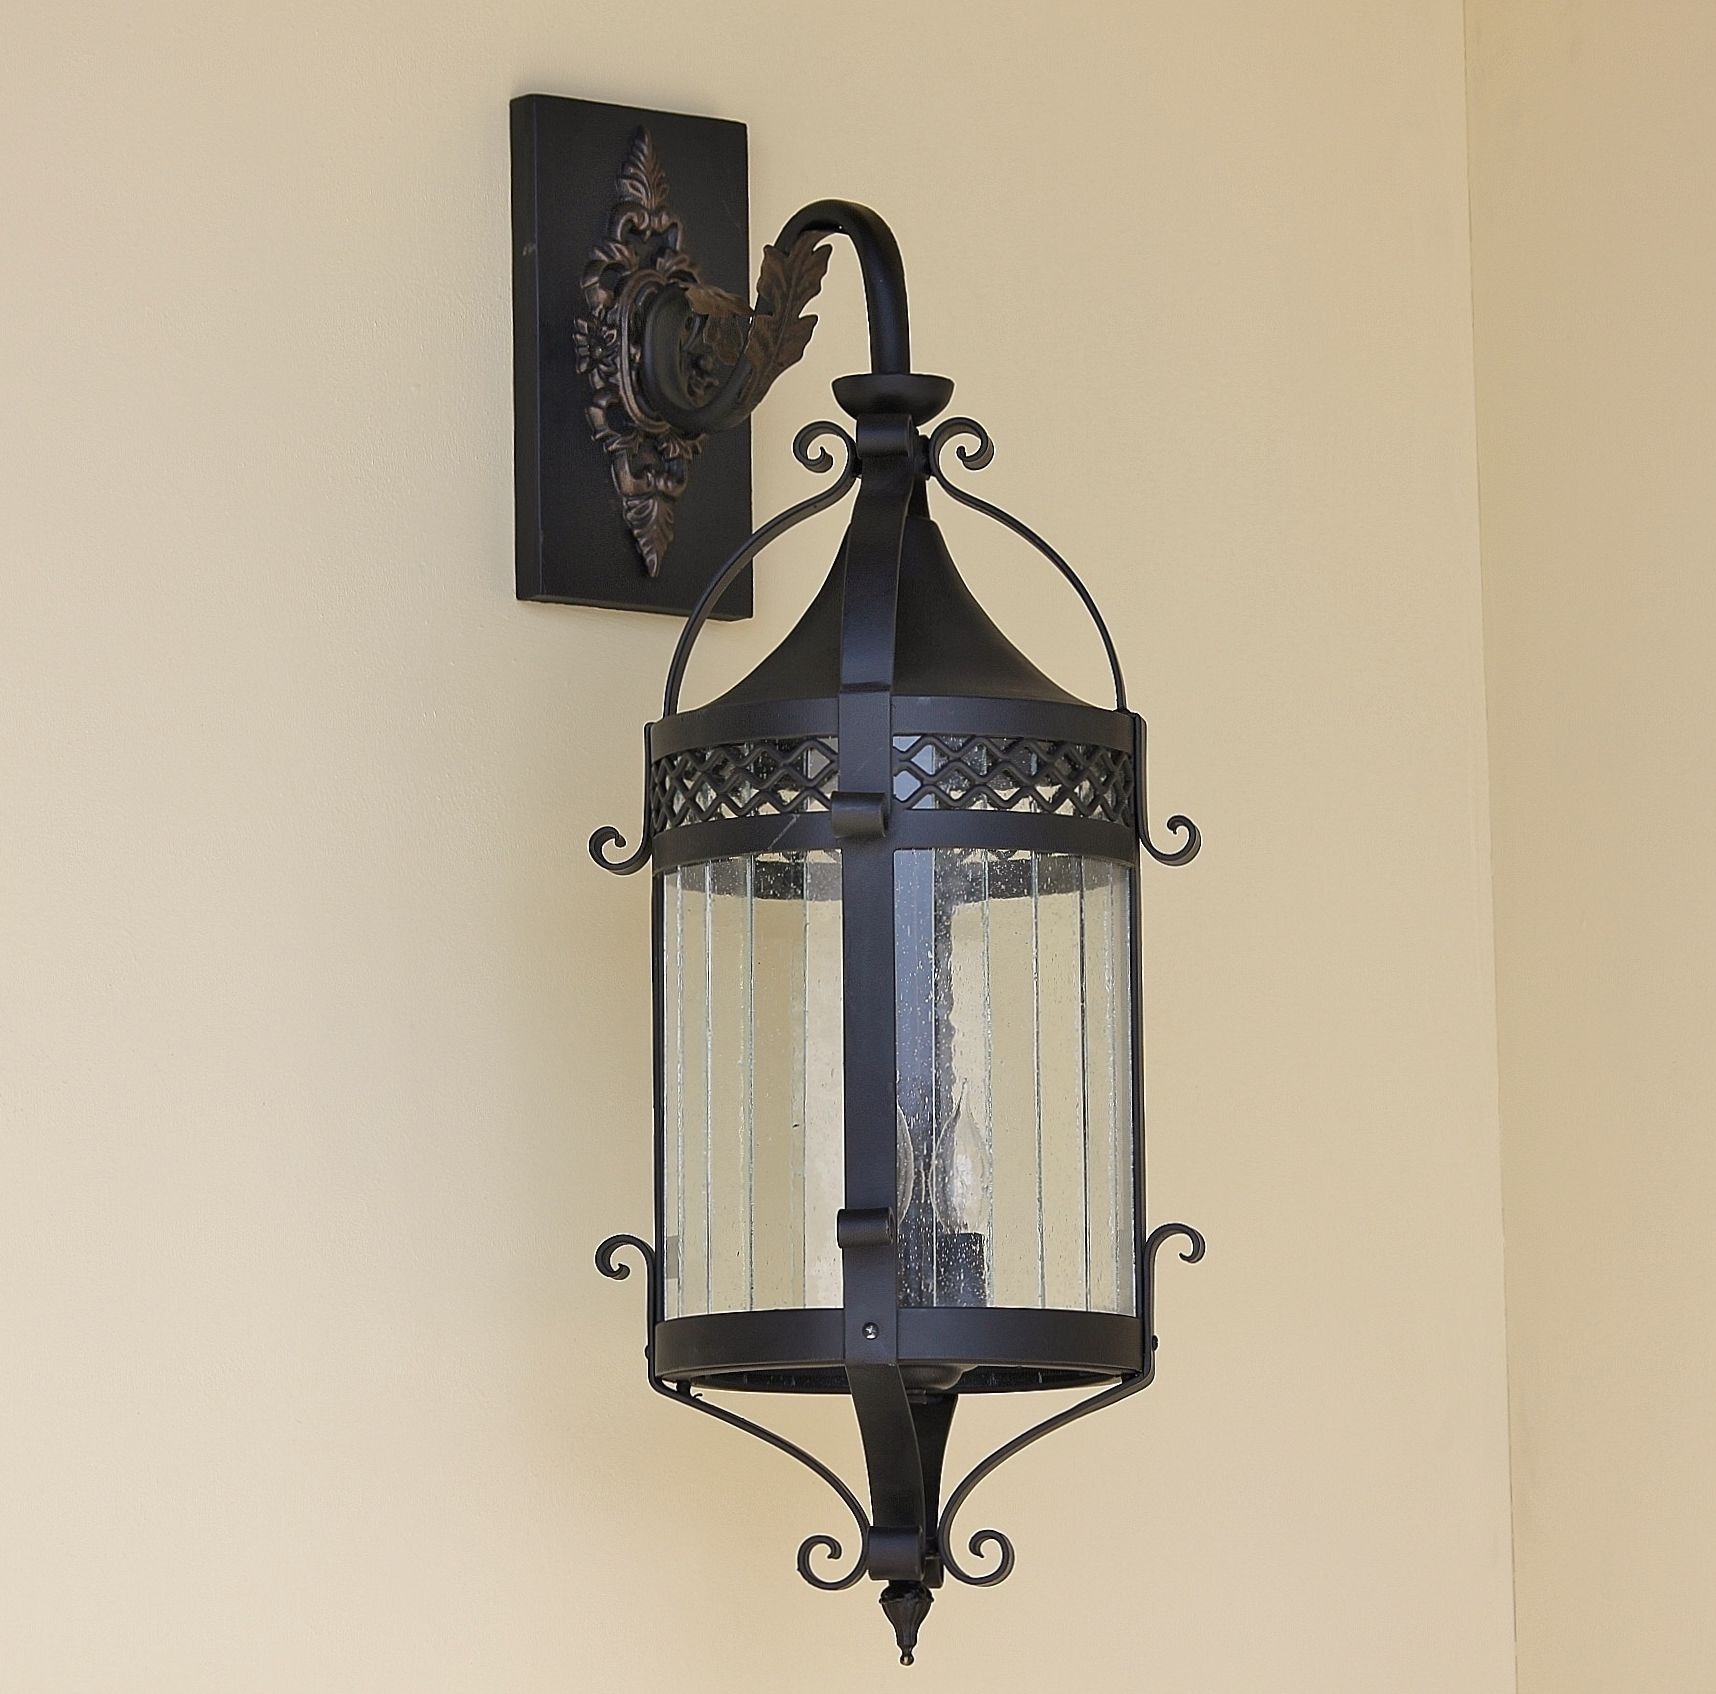 Lights Of Tuscany 7187 3 Tuscan Style Hanging Outdoor Wall Lantern